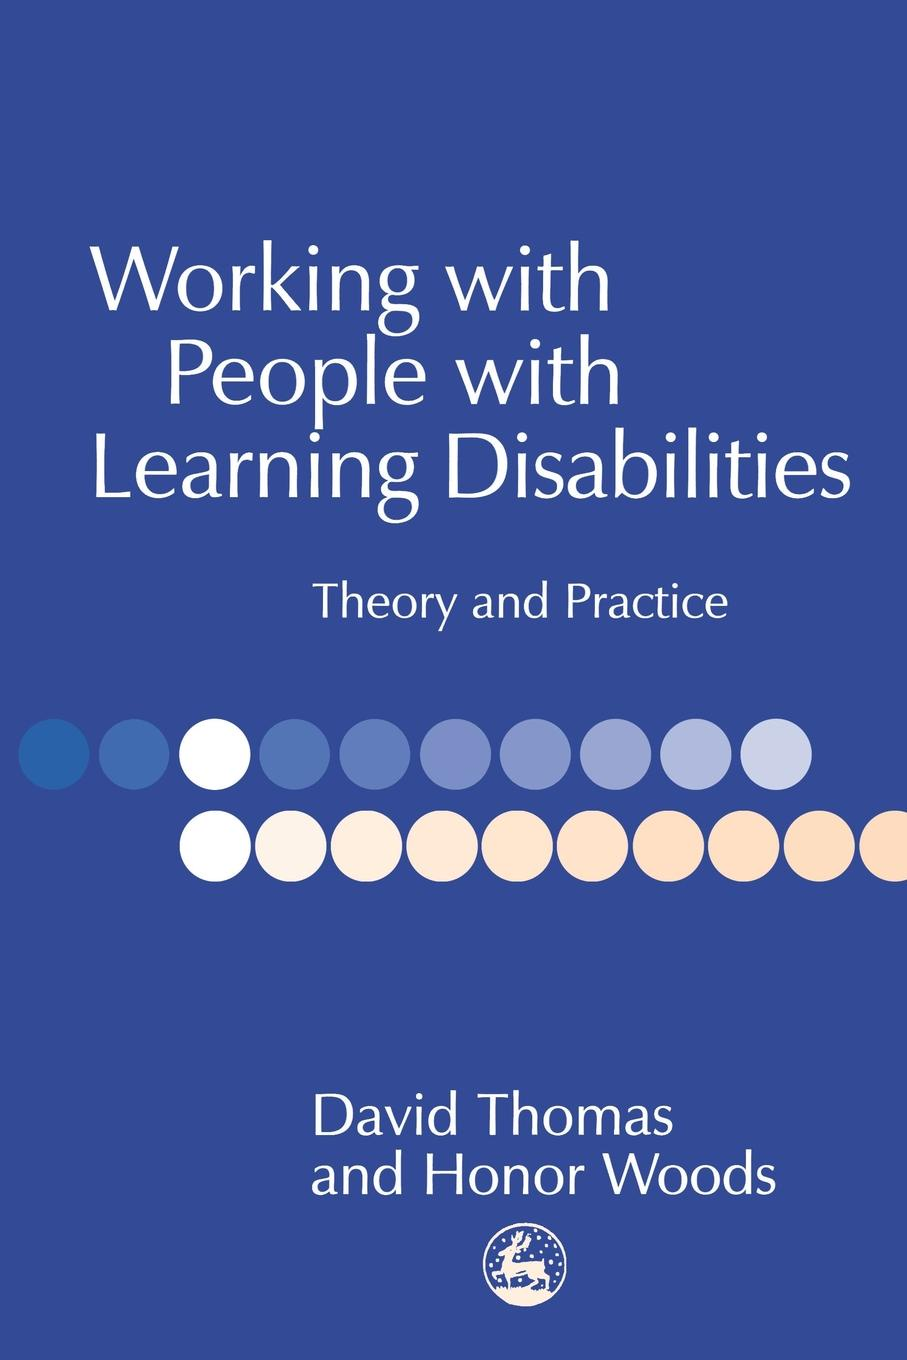 Working with People with Learning Disabilities. Theory and Practice